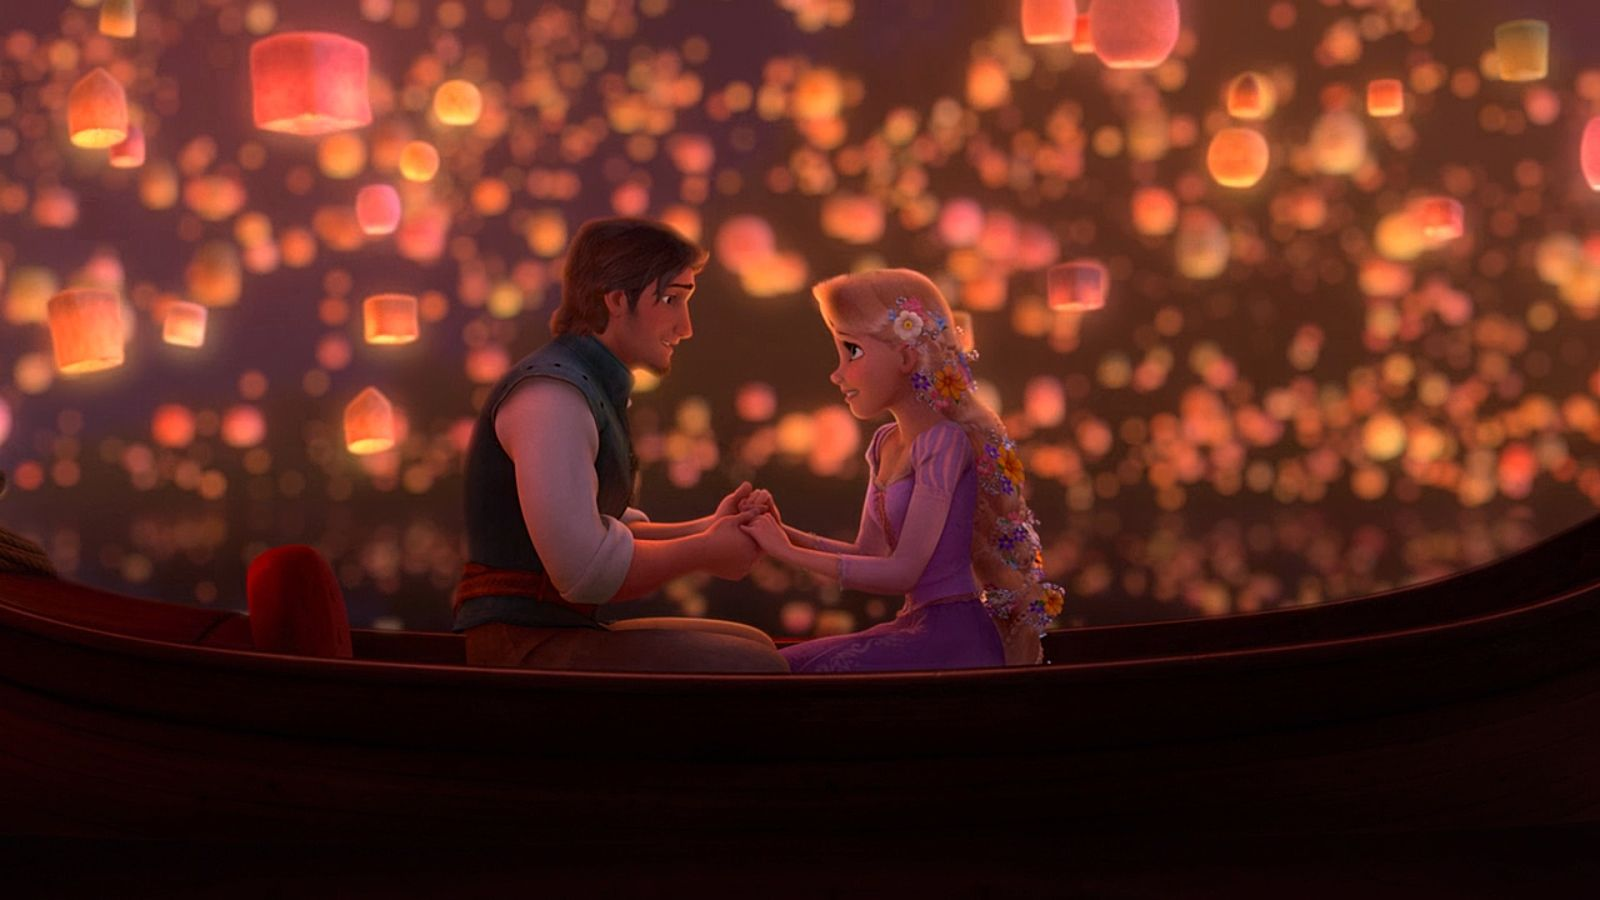 tangled wallpaper 45 wallpapers � adorable wallpapers